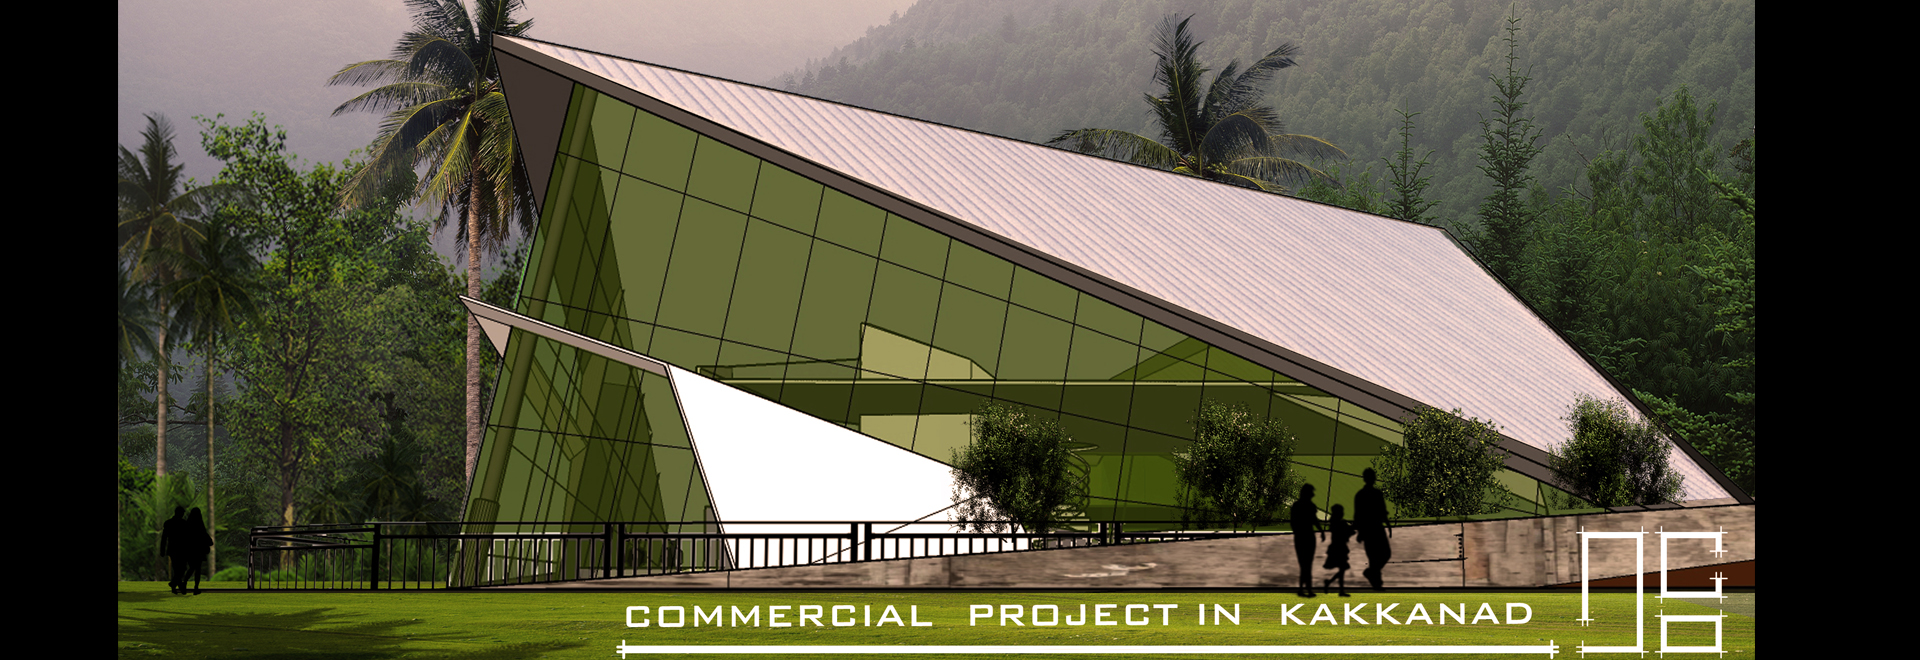 Malabar Trading Company by Design Corporate